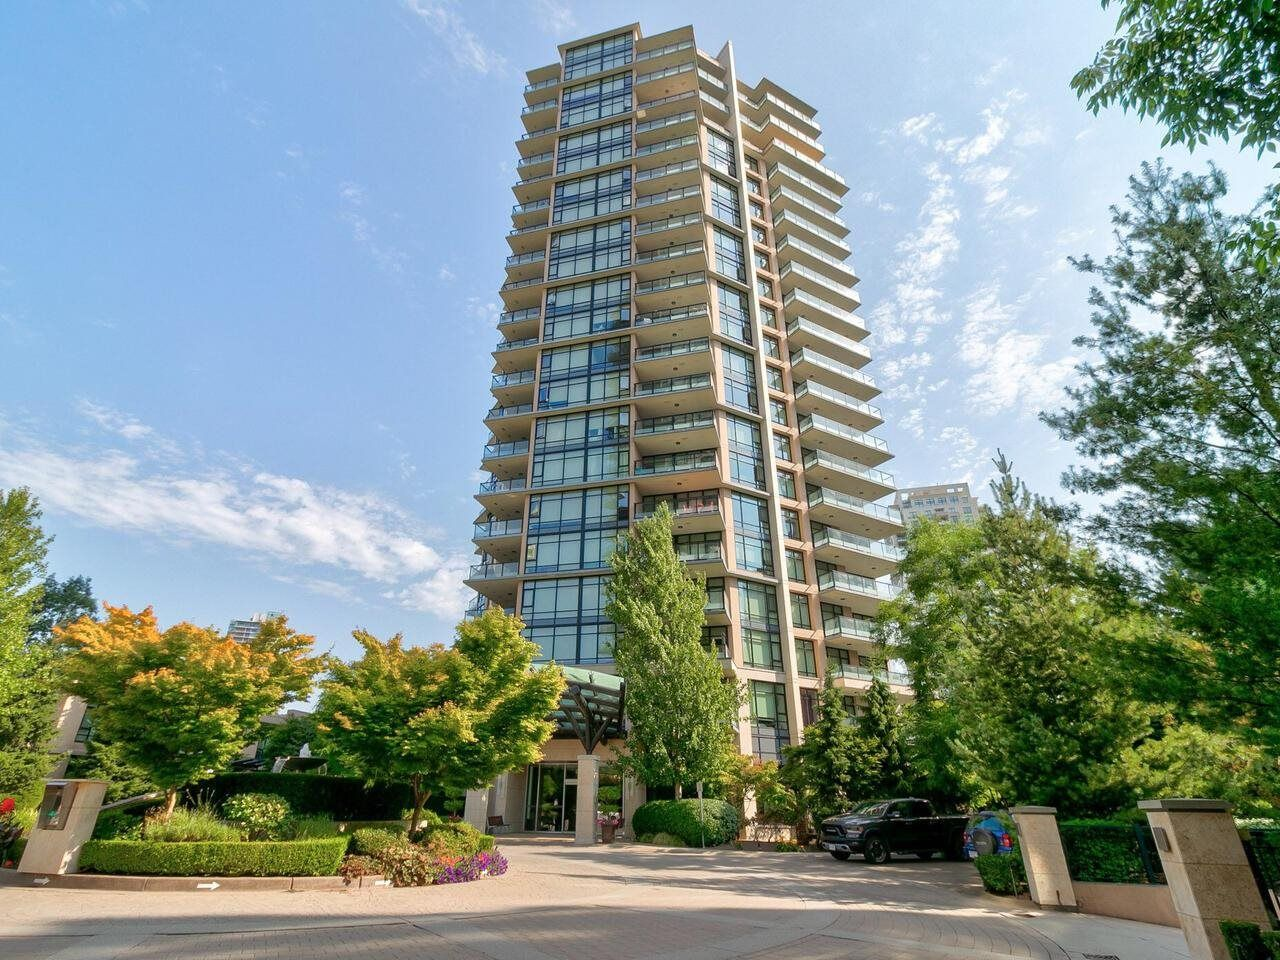 Main Photo: 801 6168 WILSON Avenue in Burnaby: Metrotown Condo for sale (Burnaby South)  : MLS®# R2607303